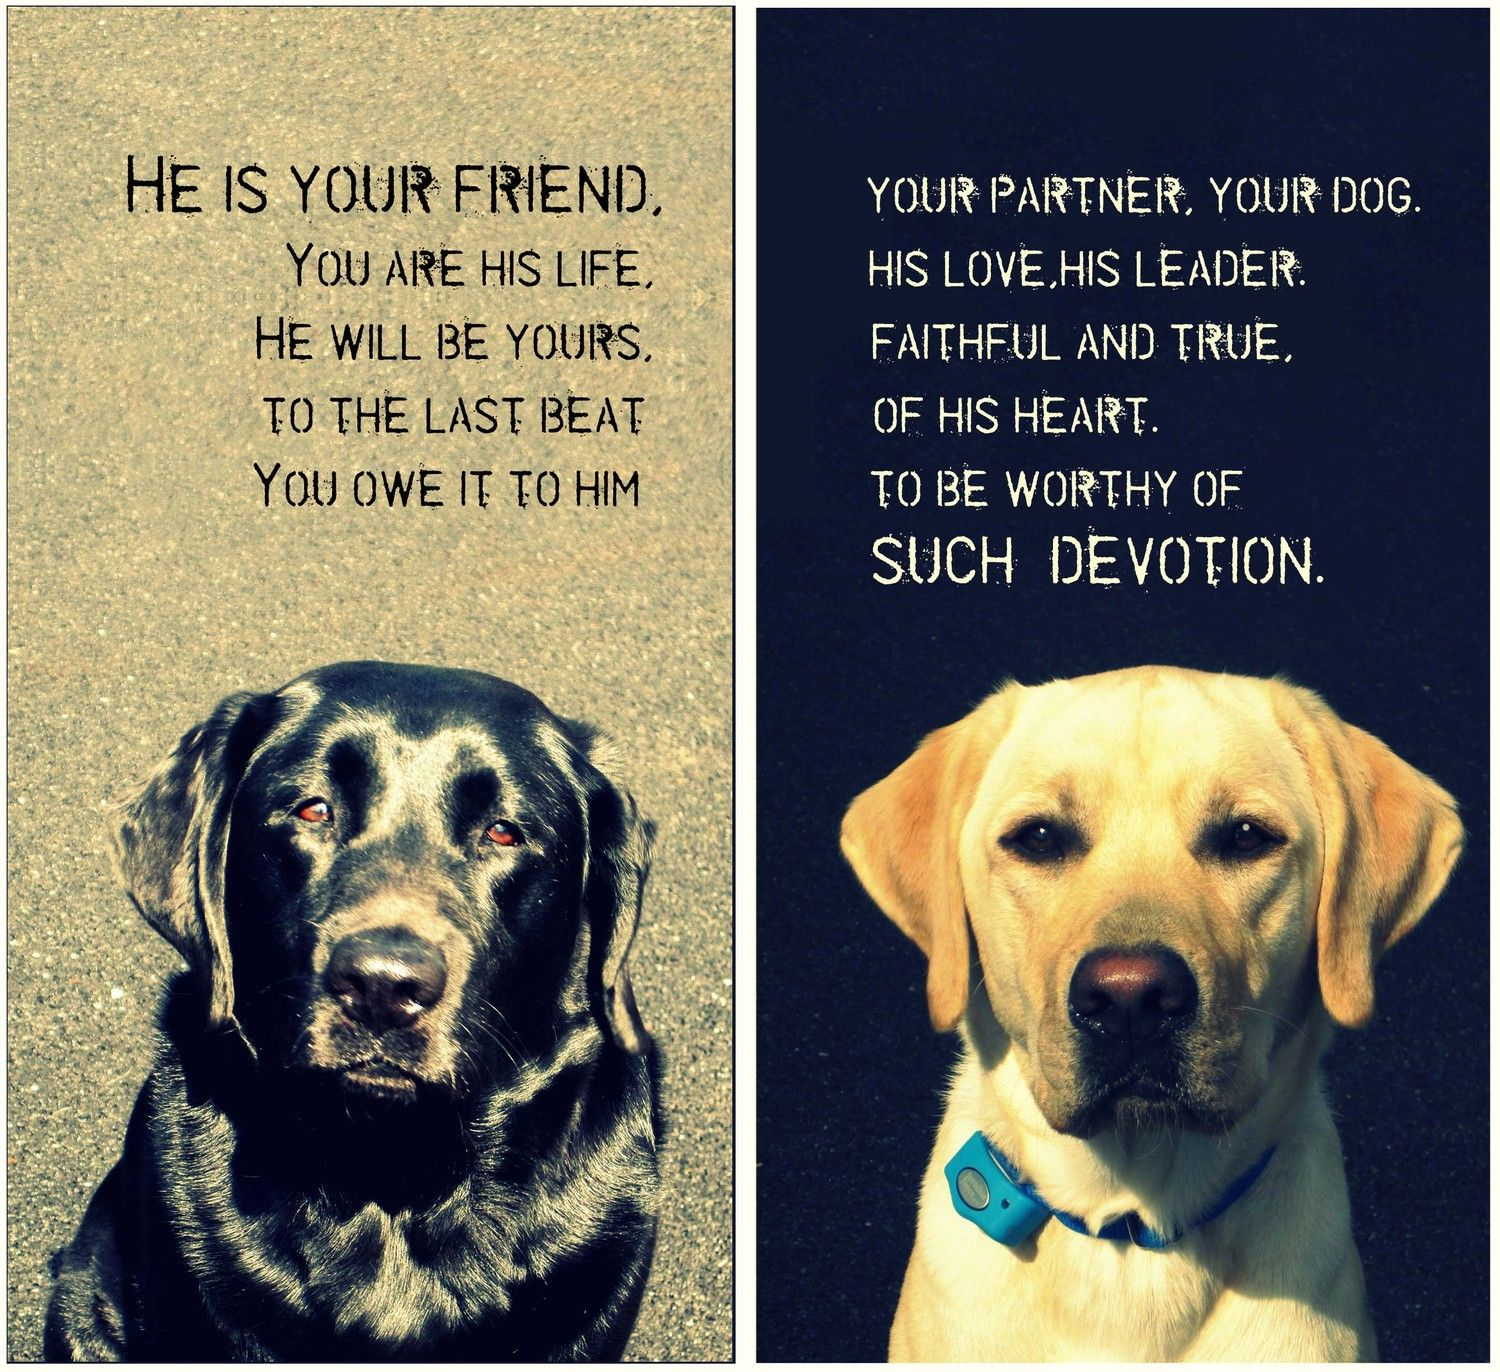 Wedding Gifts For Dog Lovers: Dog PET Lover Loss Of Pet Portrait Art Words Photo